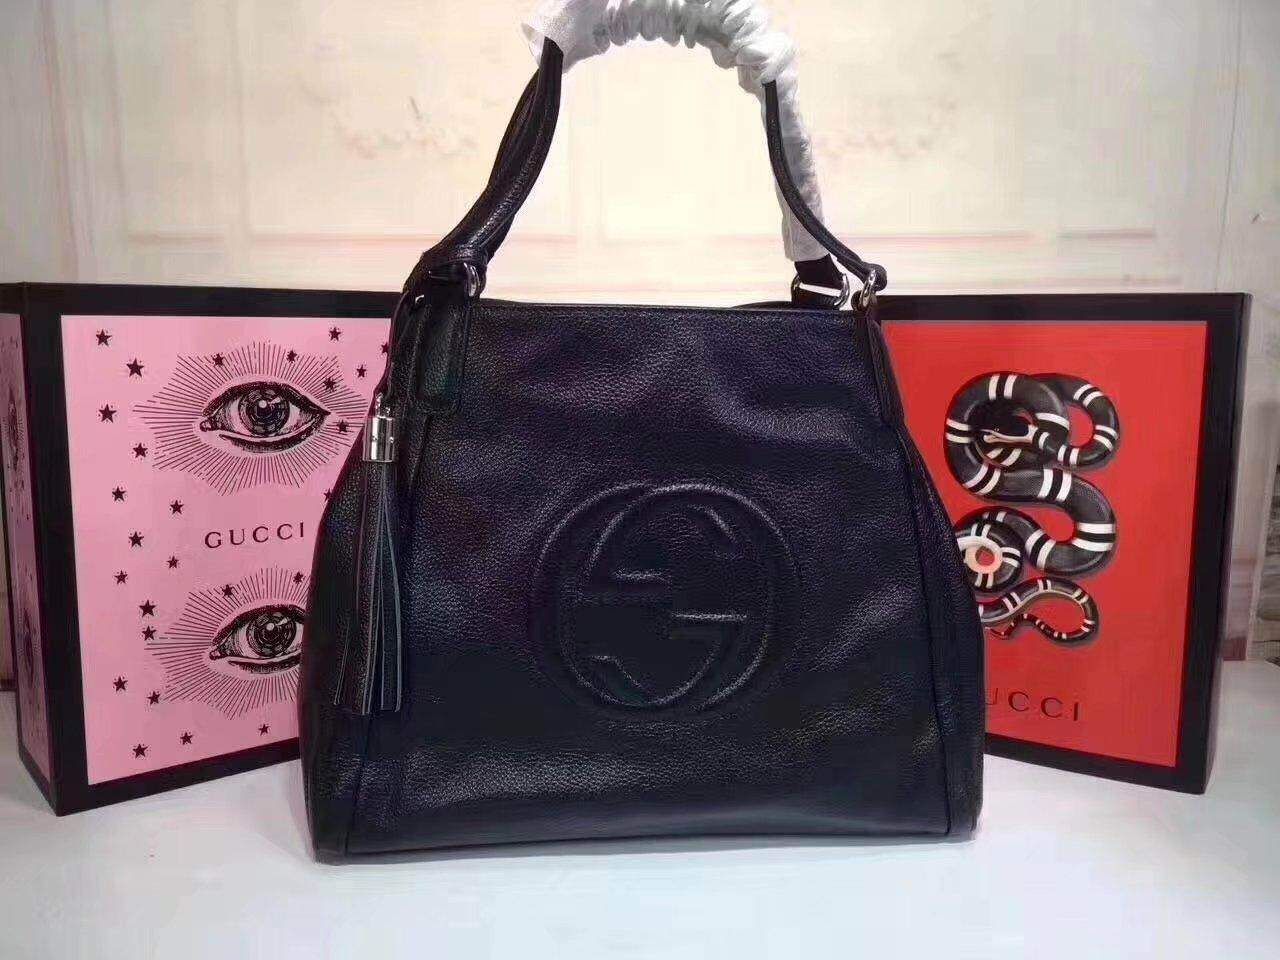 2018 Gucci Soho Top Handle Tote Leather Satchel Medium Hand Bag